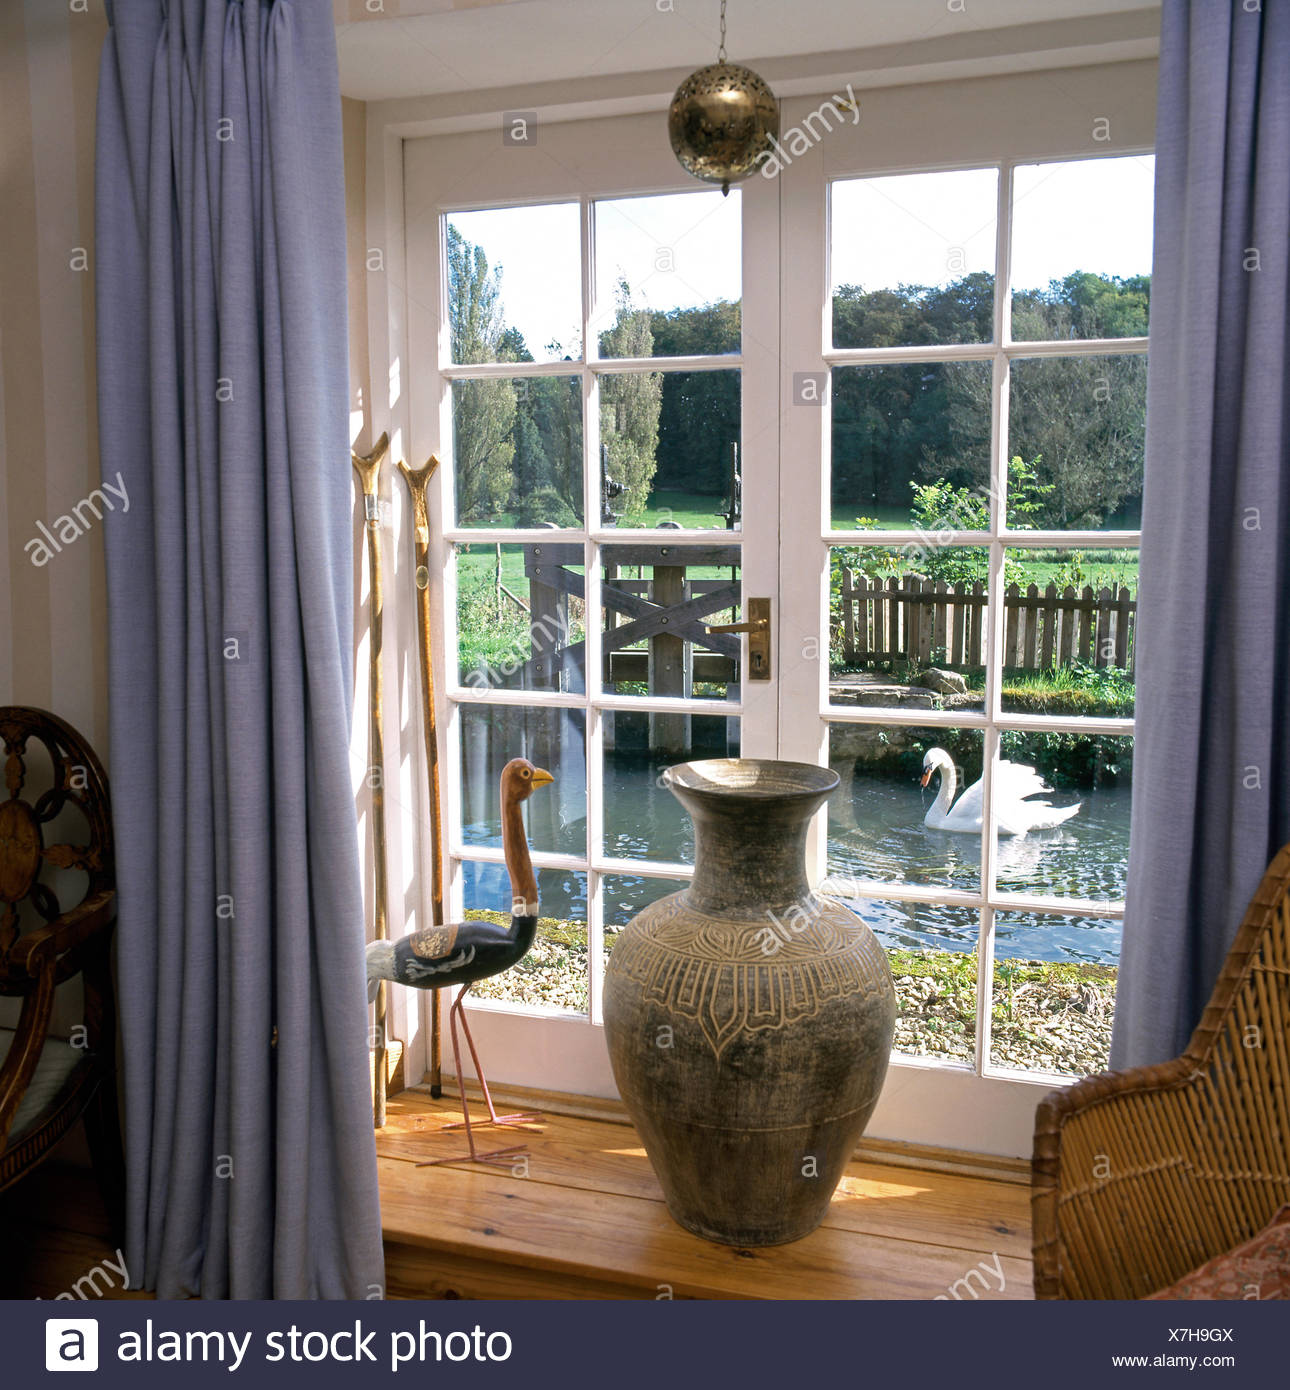 Blue Curtains On Window With A Tall Pot And A Wooden Bird In Country Dining  Room